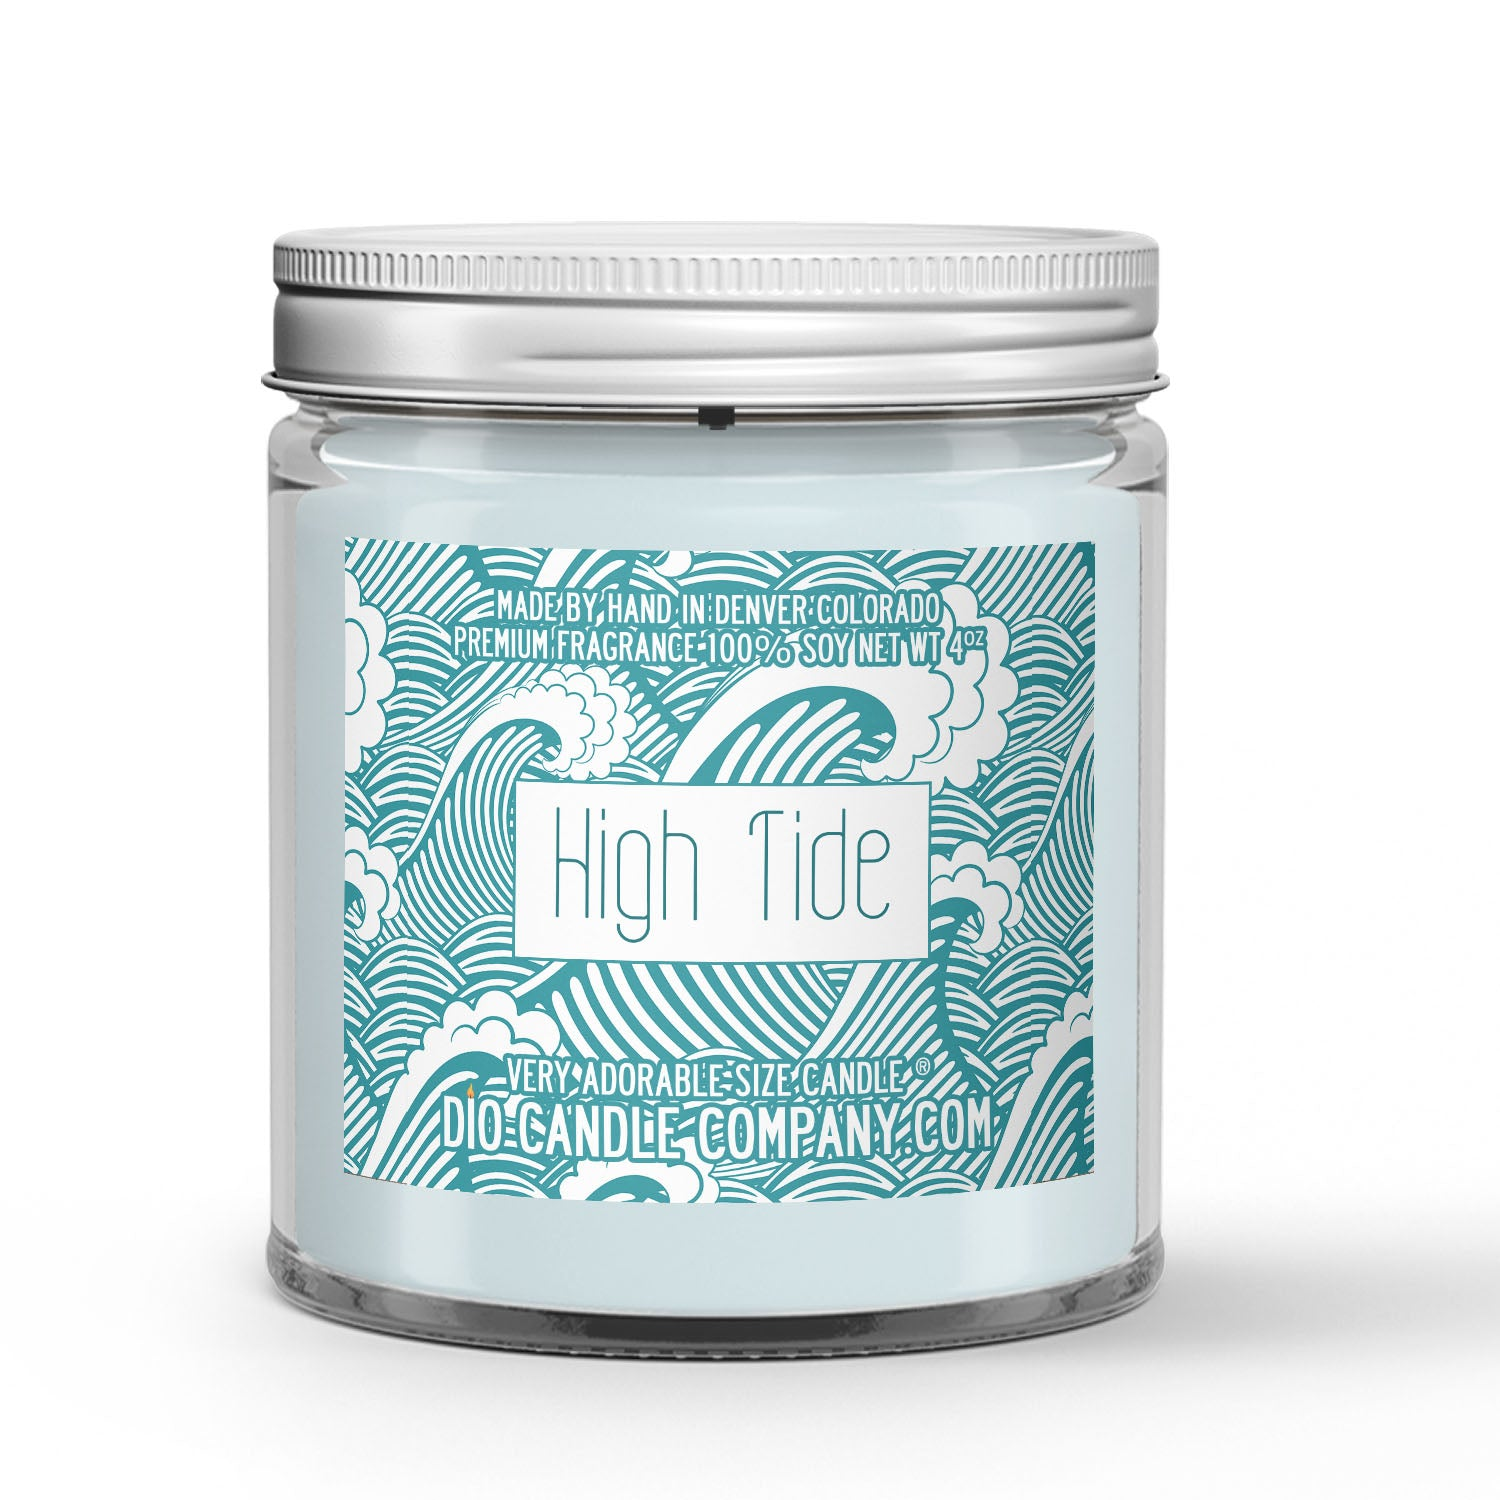 High Tide Candle Ozone - Sea Salt - Musk Scented - Dio Candle Company